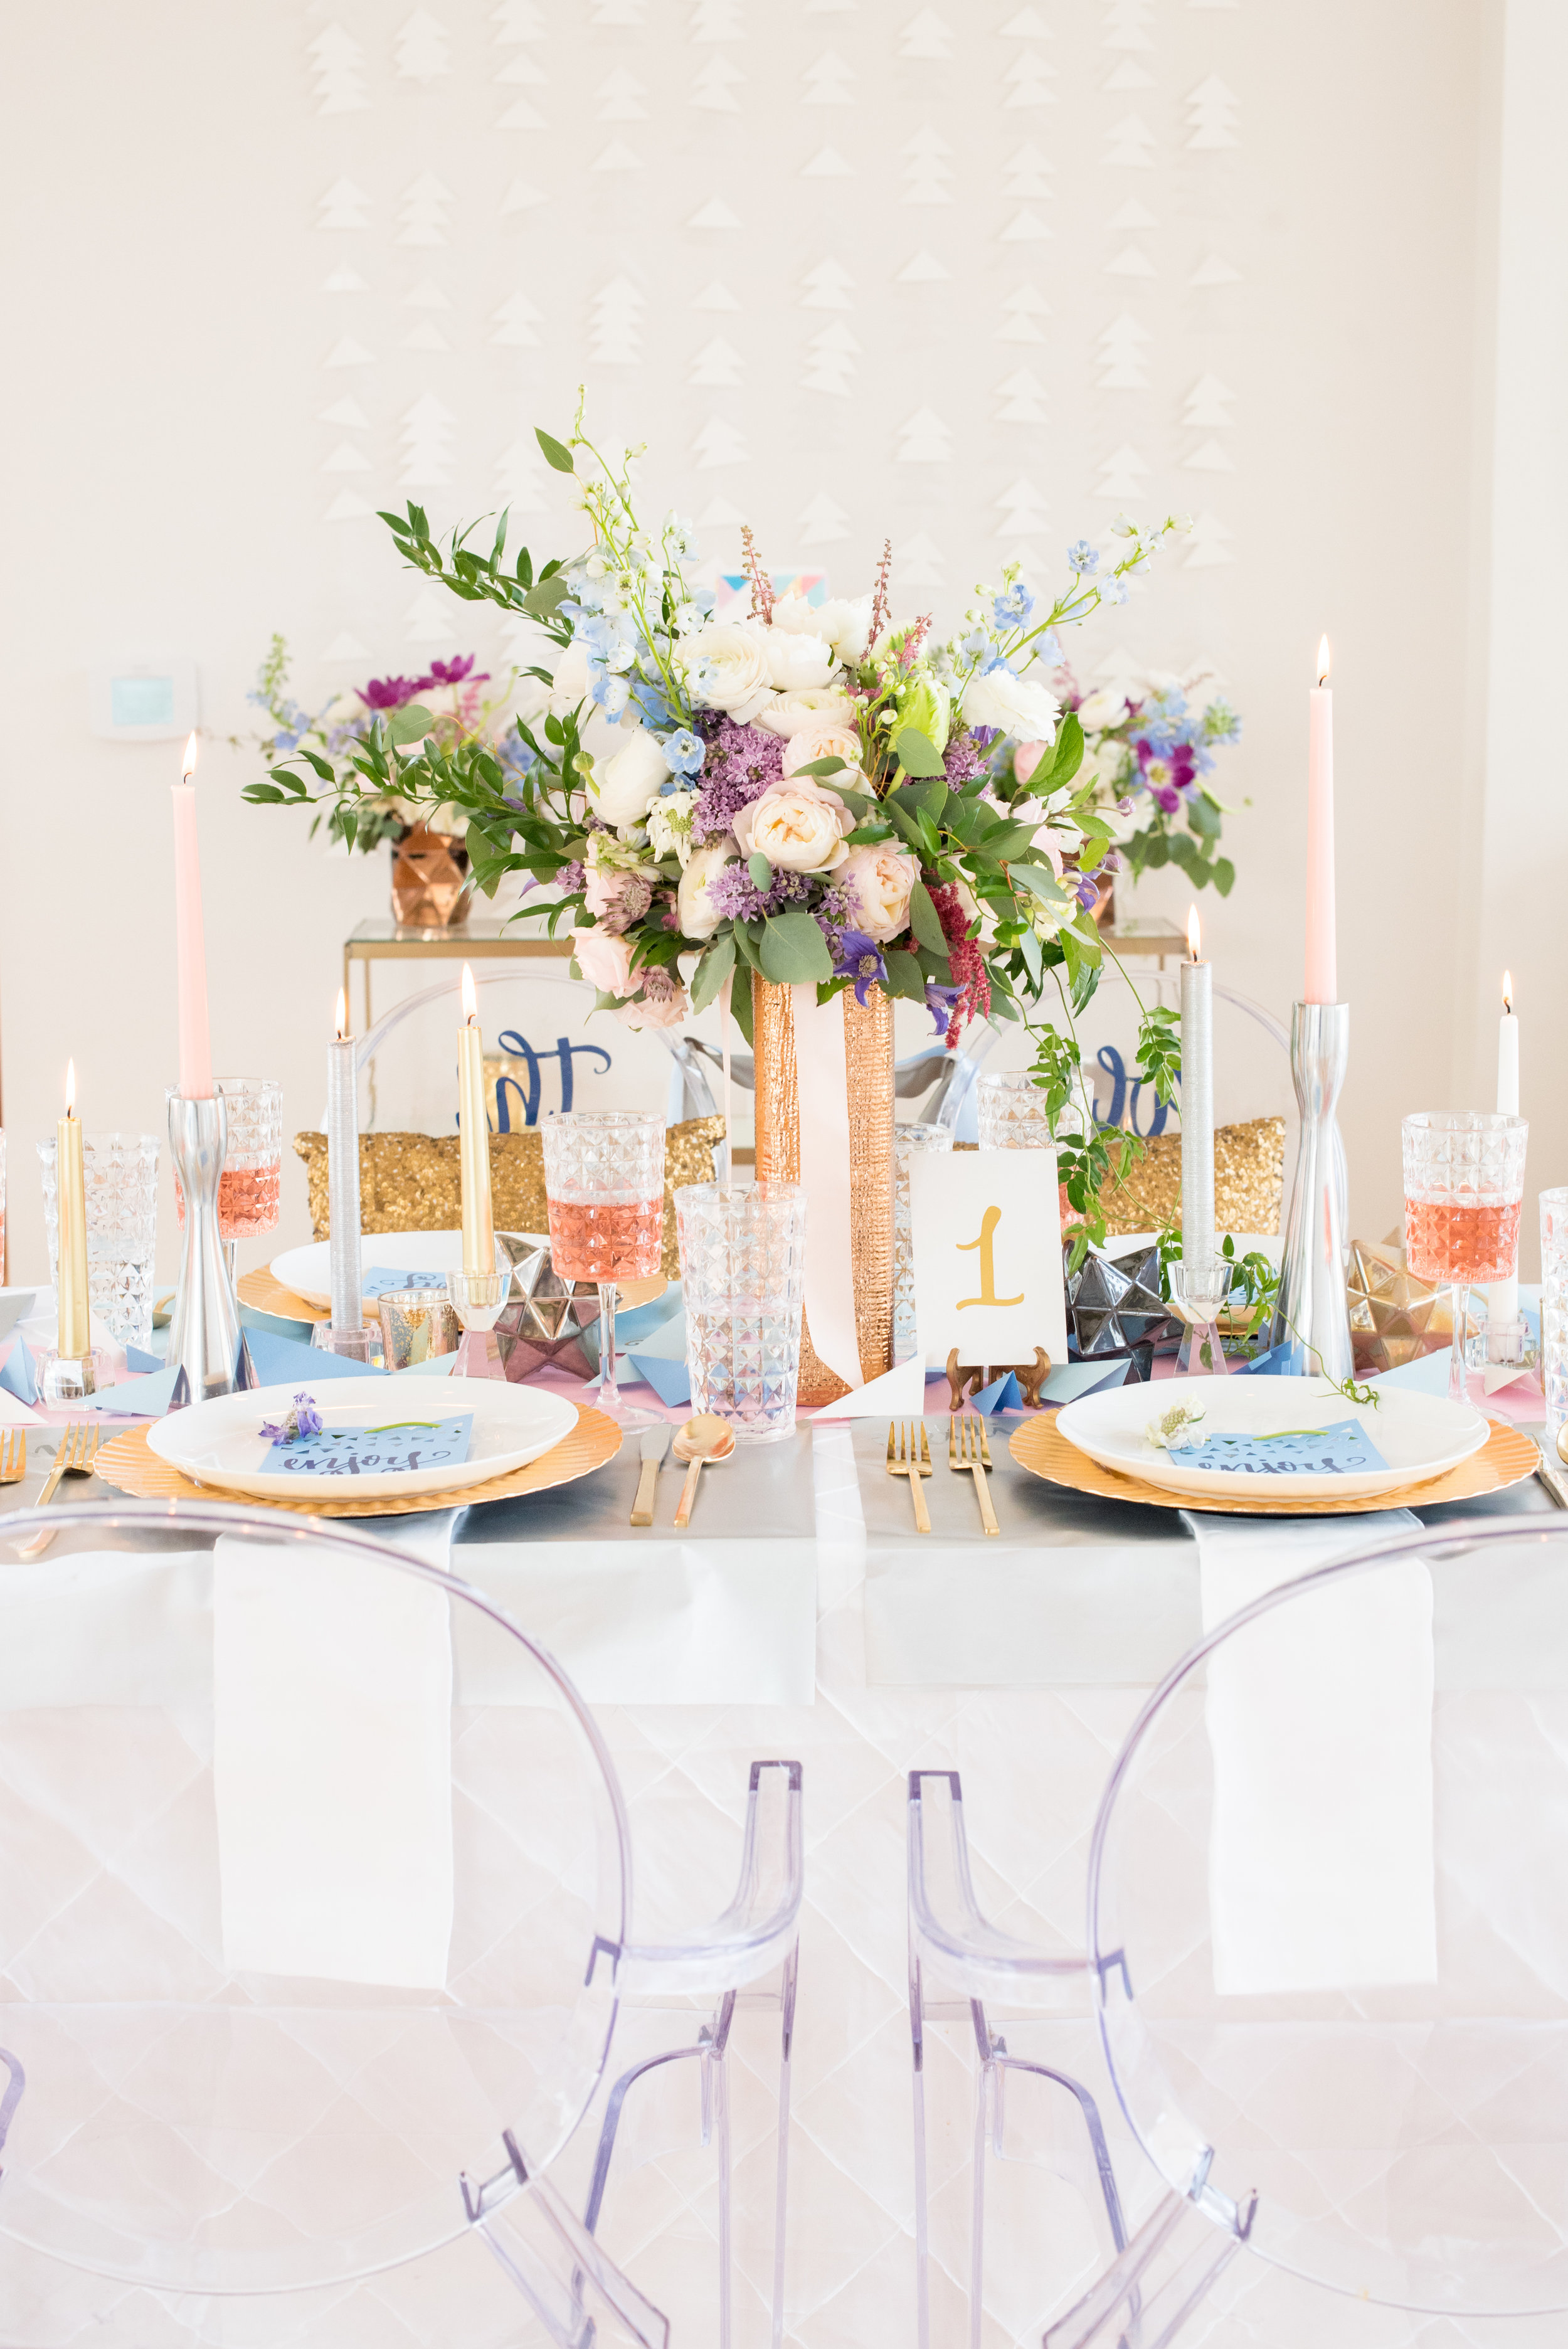 The Glass Box, Paper Inspired Wedding, Pantone Color of the Year, Rose Quartz and Serenity